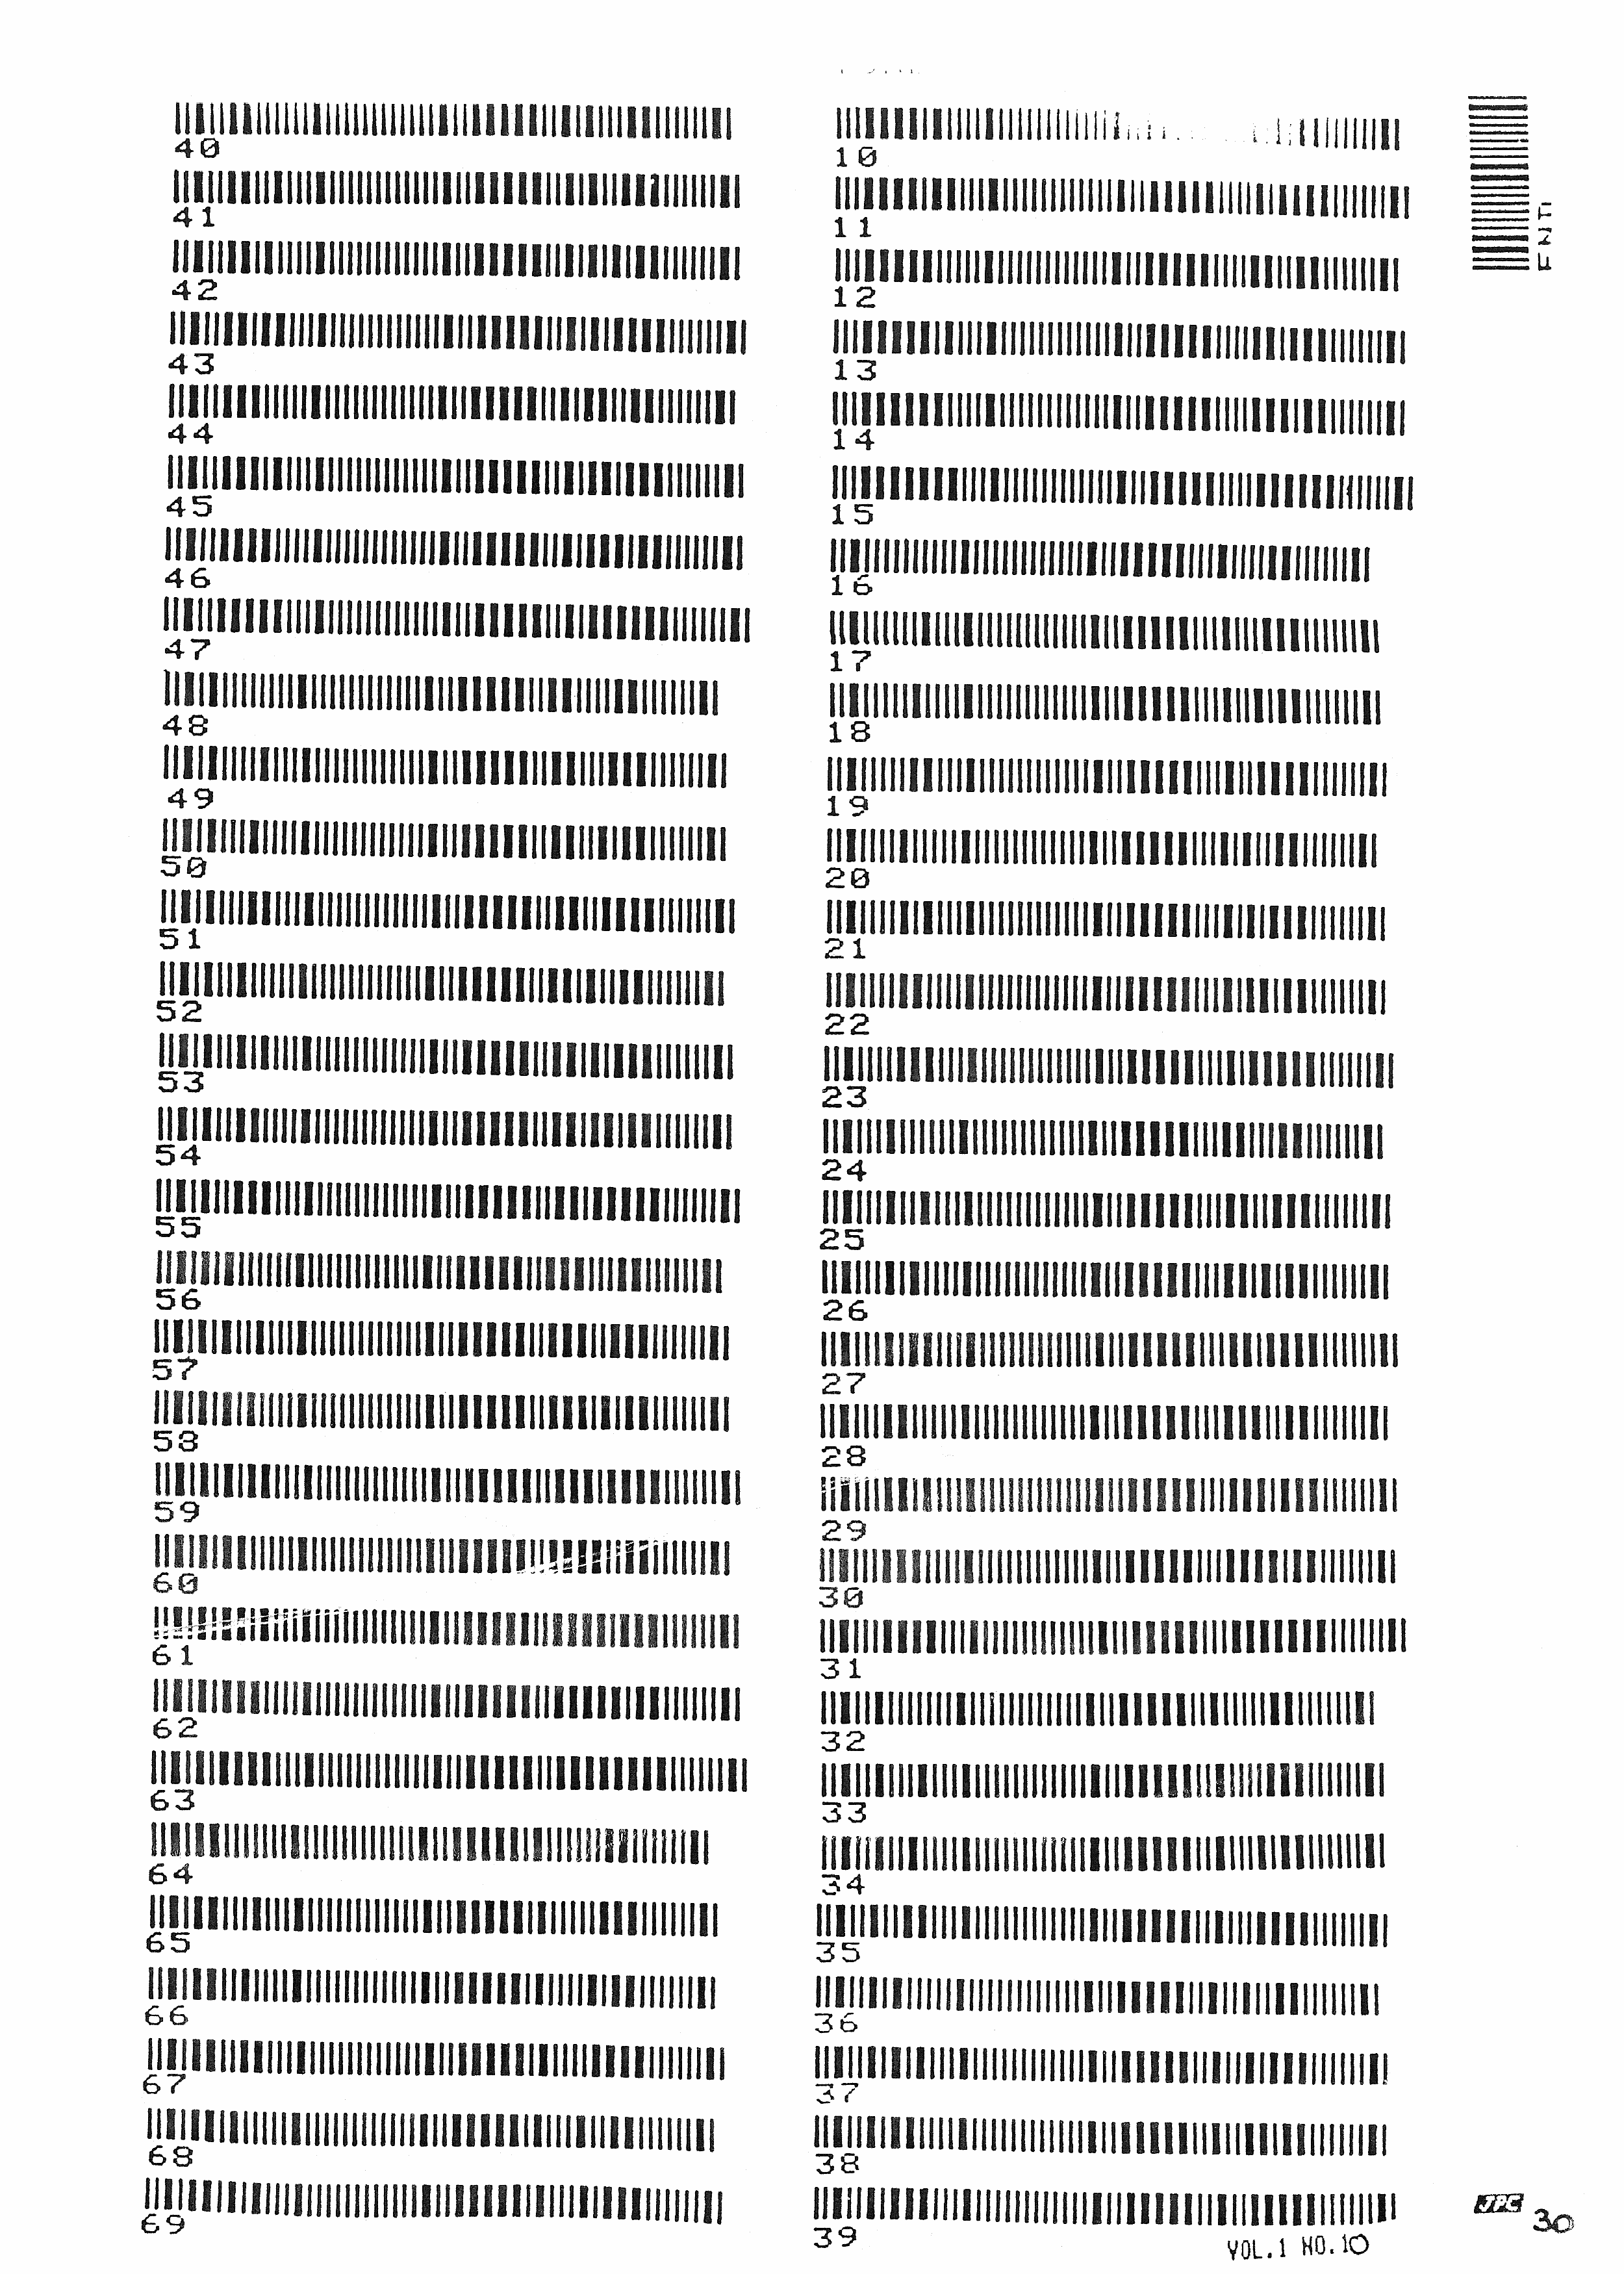 Jp-10-page-30-1000